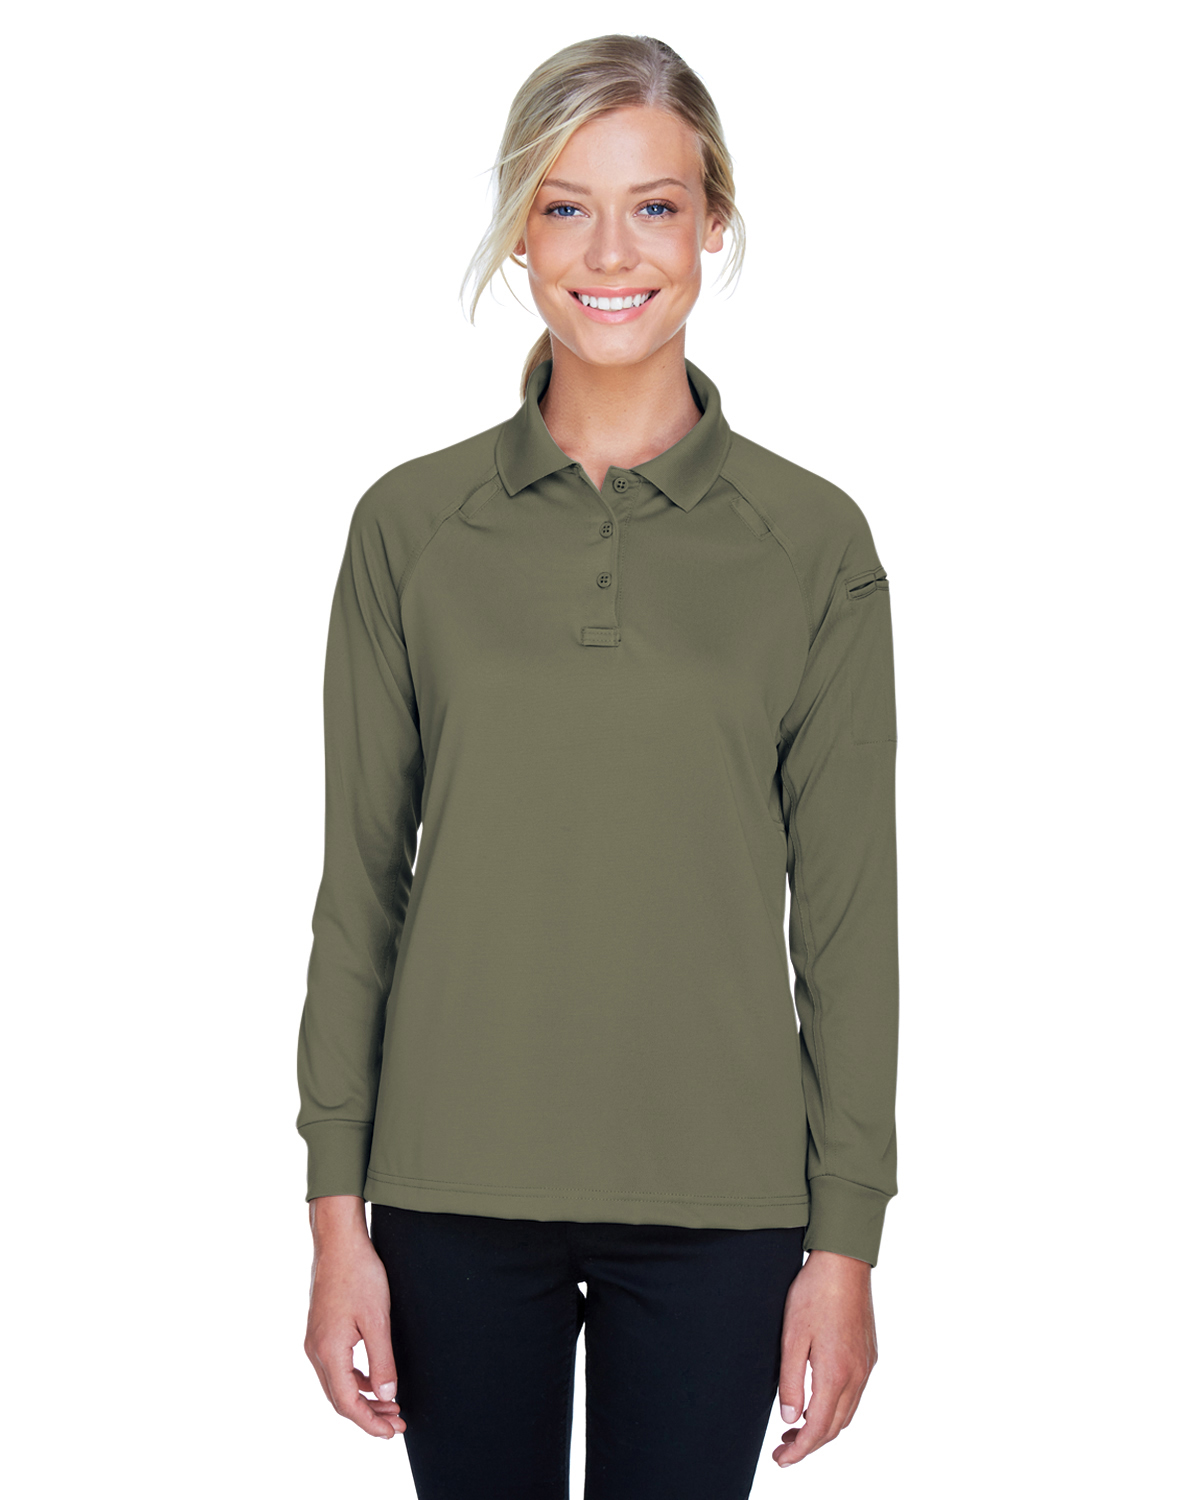 PSO - Ladies Tactical Long-Sleeve Performance Polo -